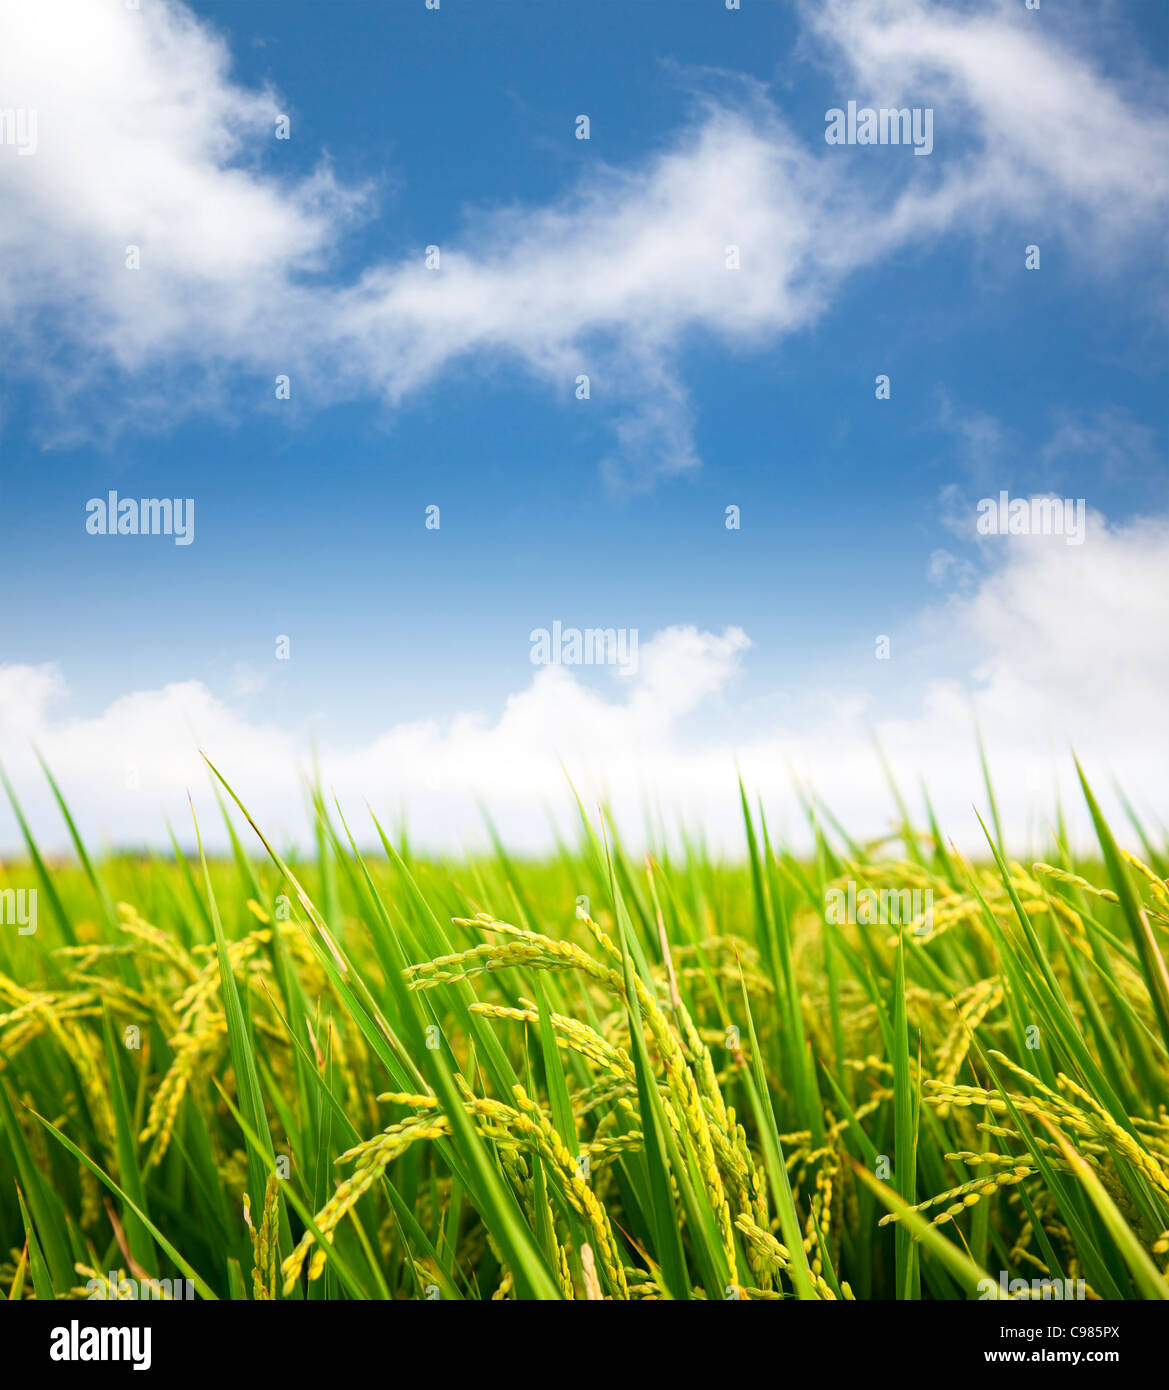 paddy rice field with cloud background - Stock Image